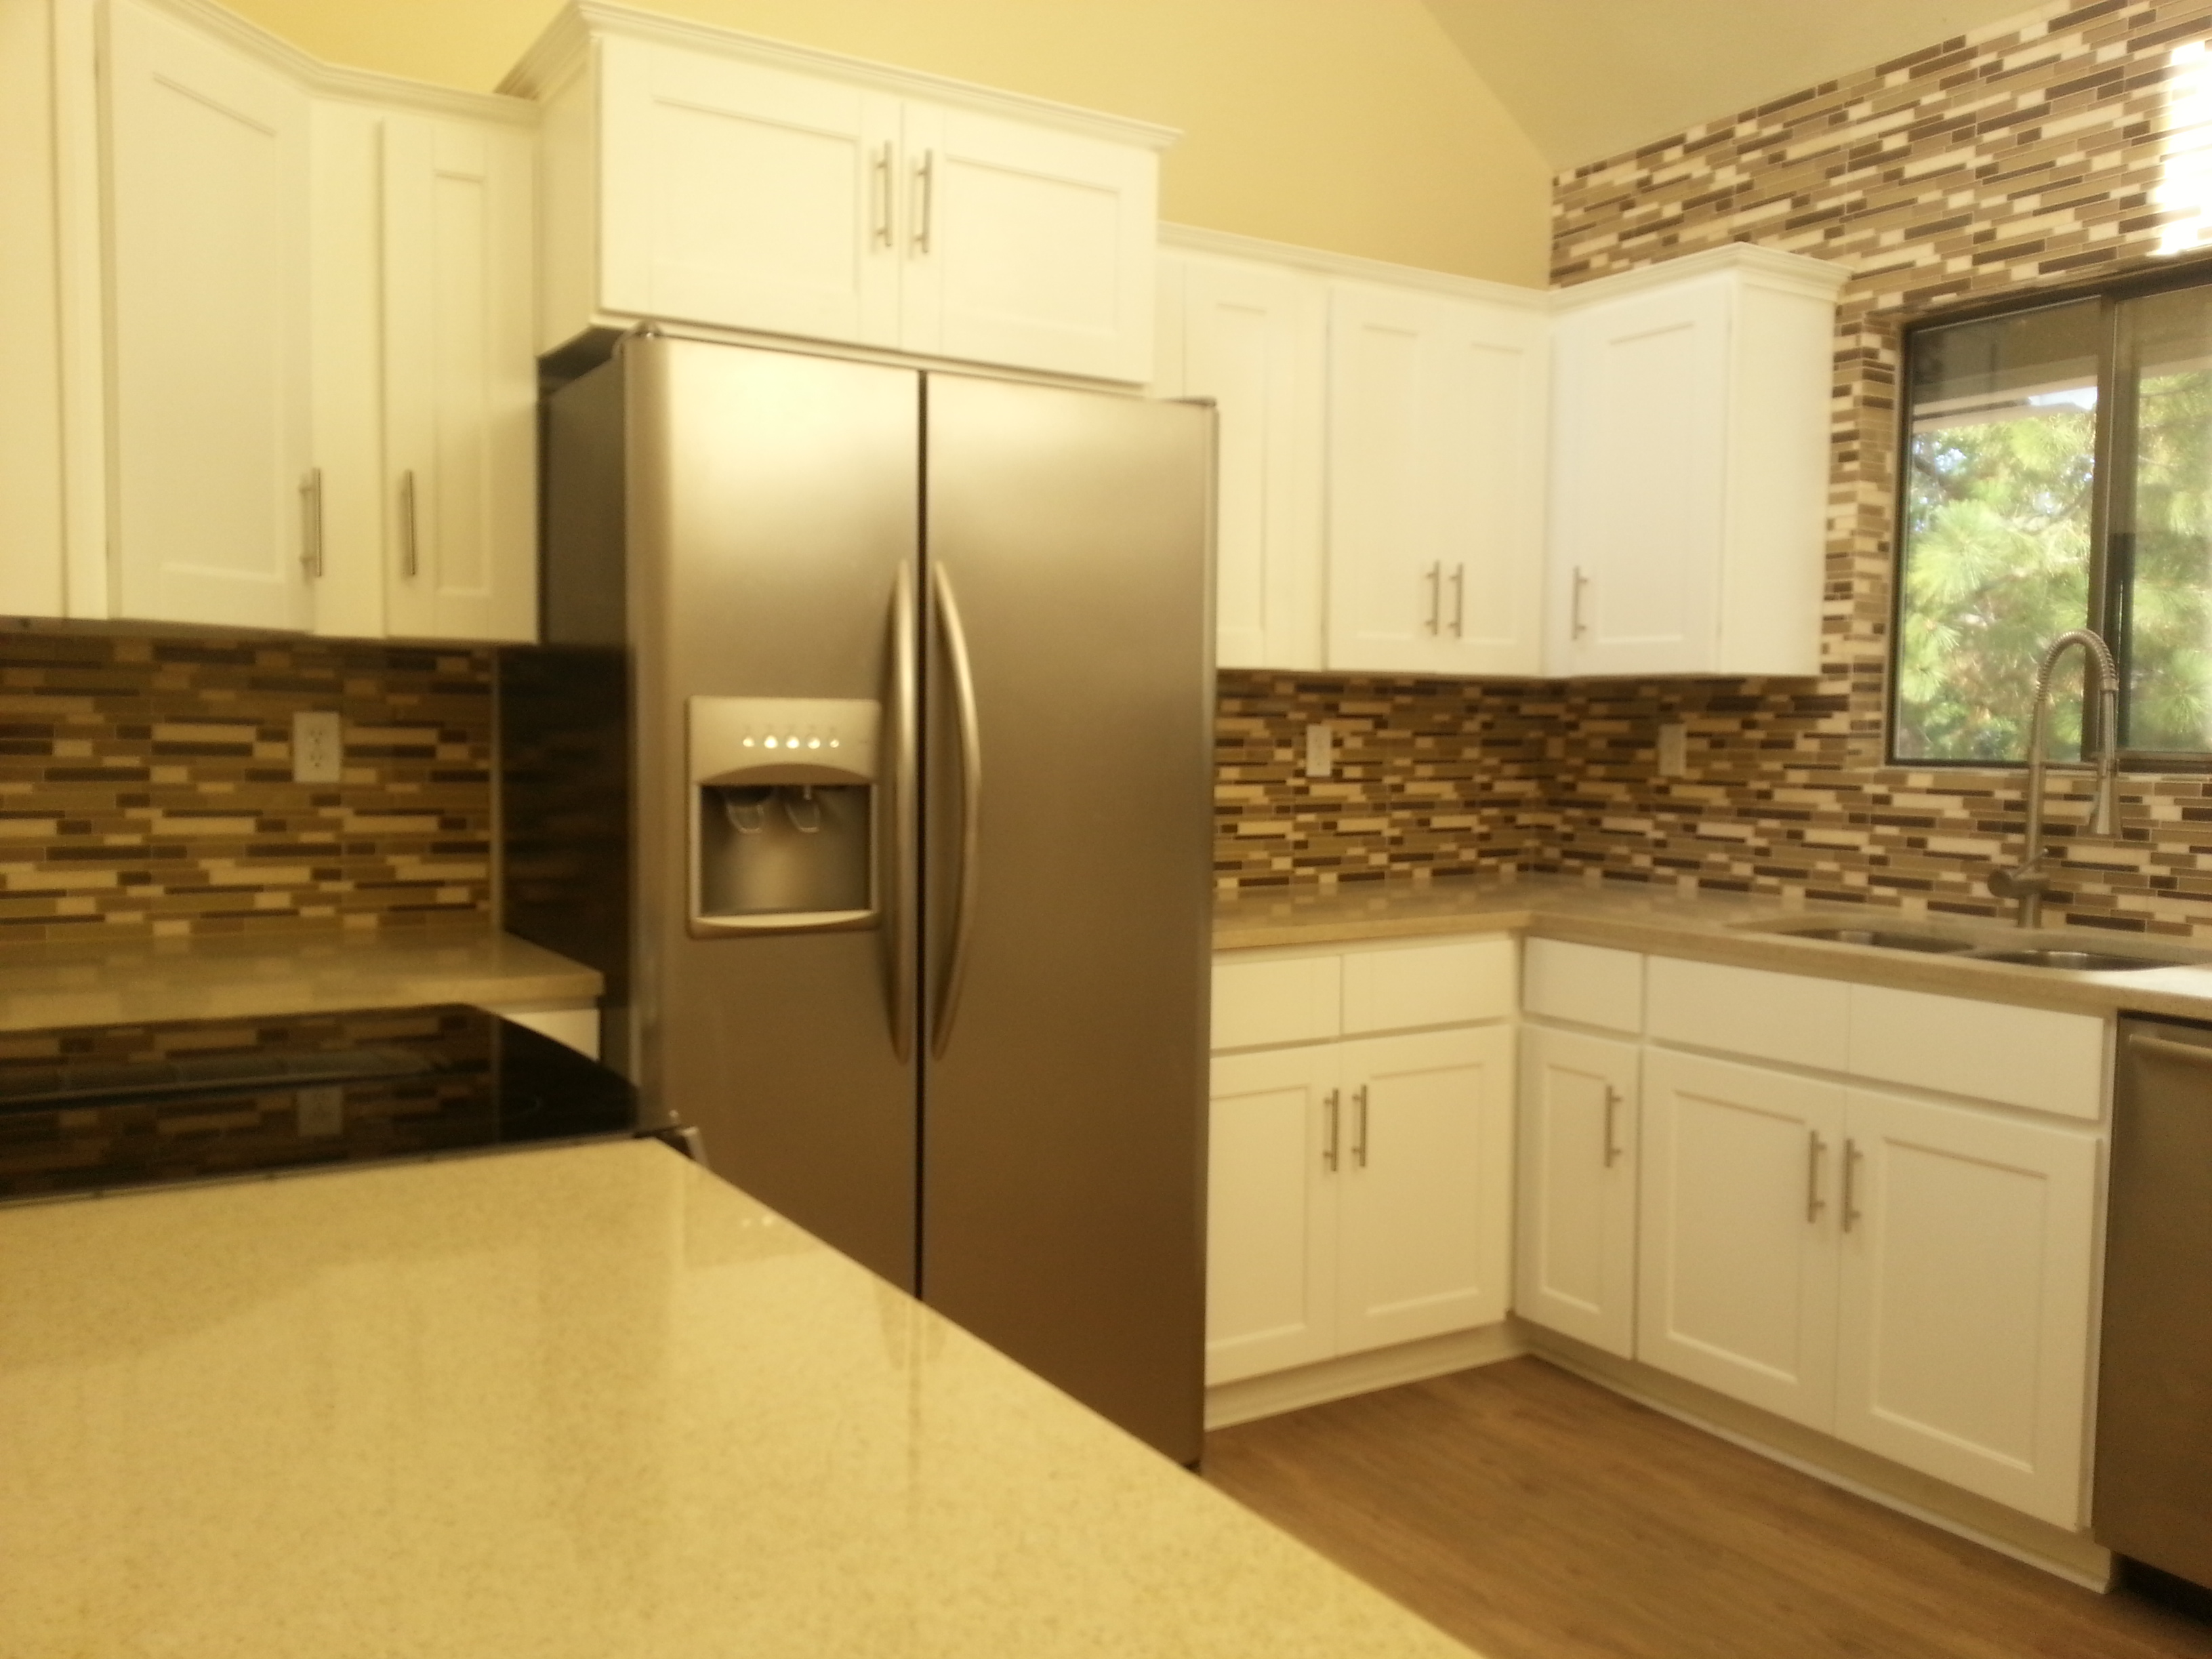 Solid Surface Counter Tops Central Oregon Construction